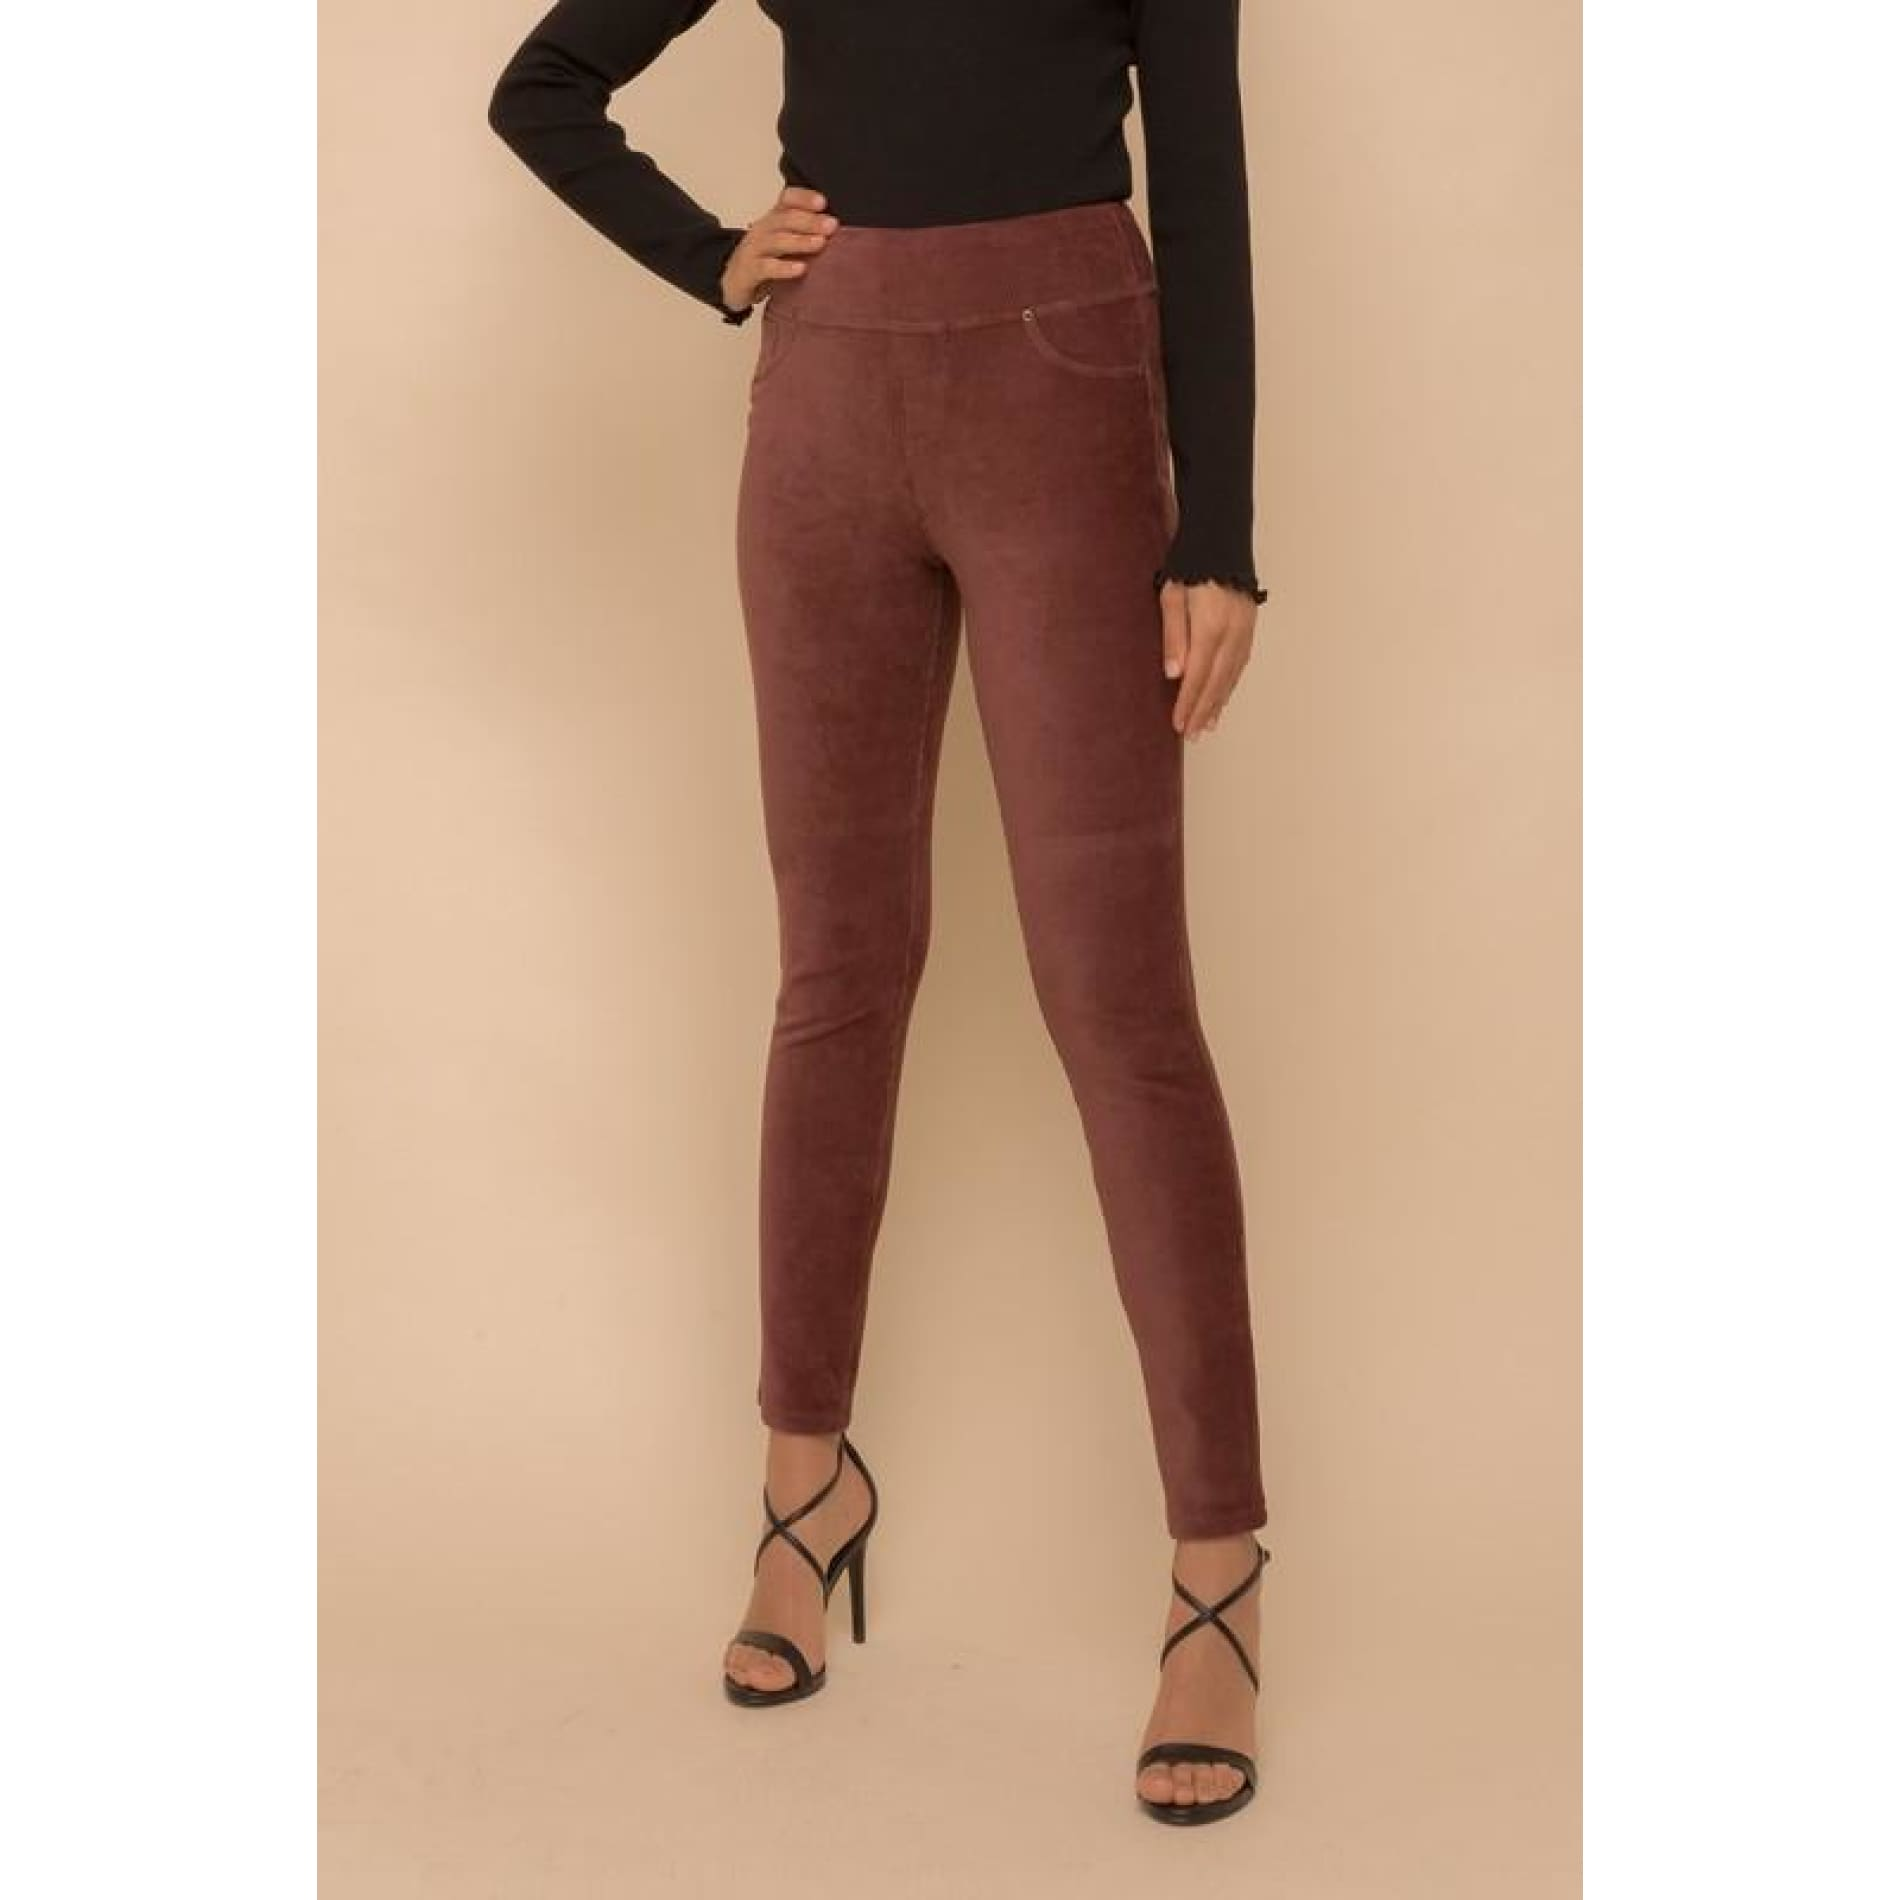 Meet Me at the Orchard Leggings - Bottoms